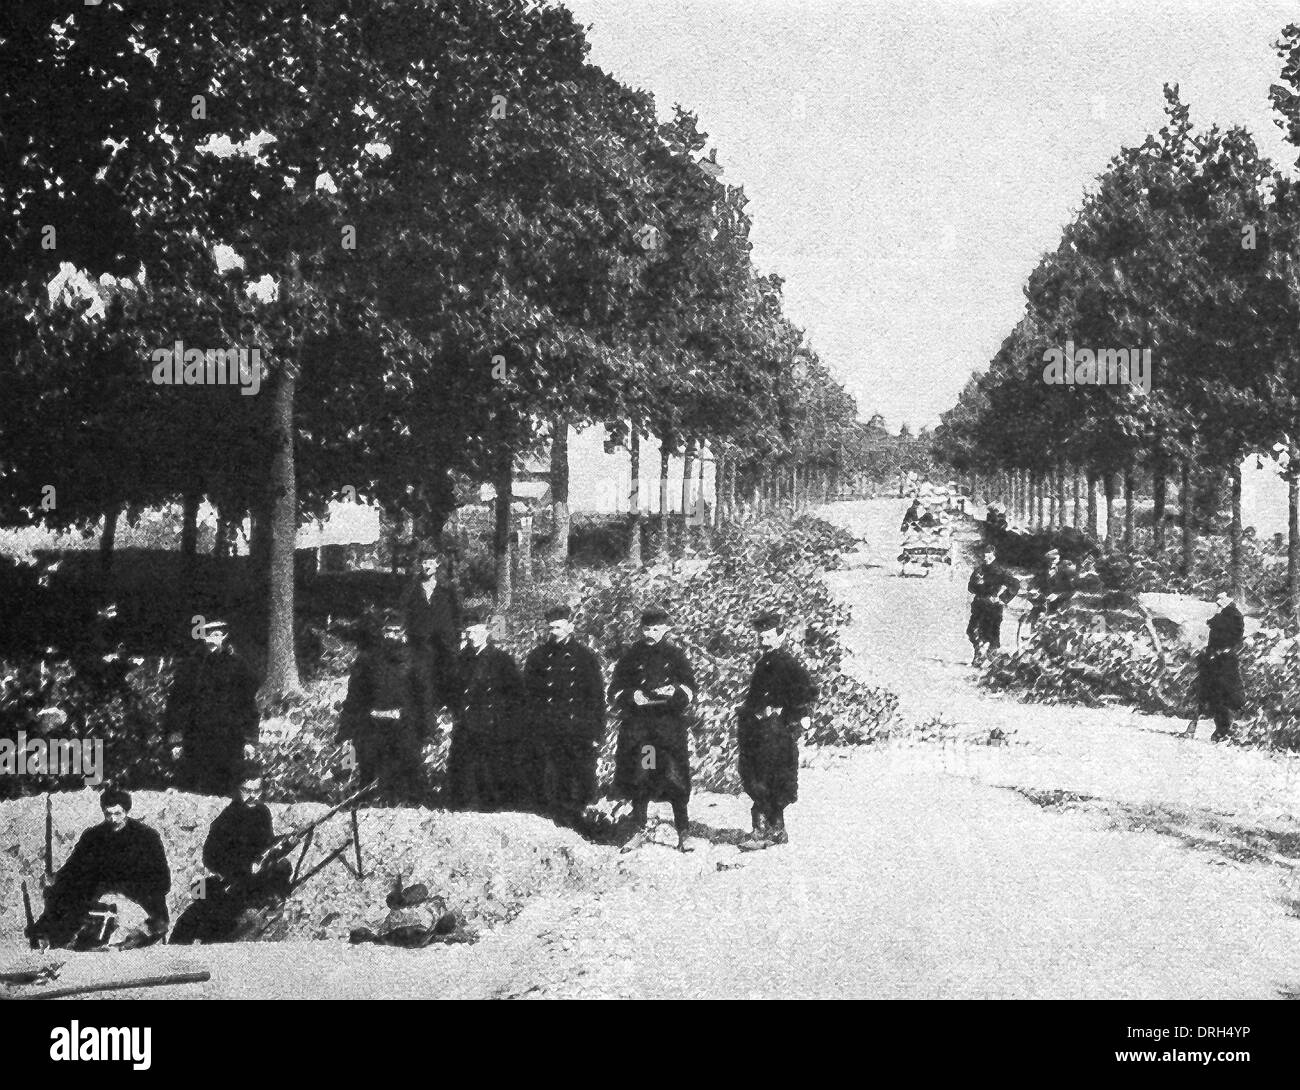 This photo shows Belgian trenches near the city of Ghent and how the Allied military blocked the road against the Germans. - Stock Image